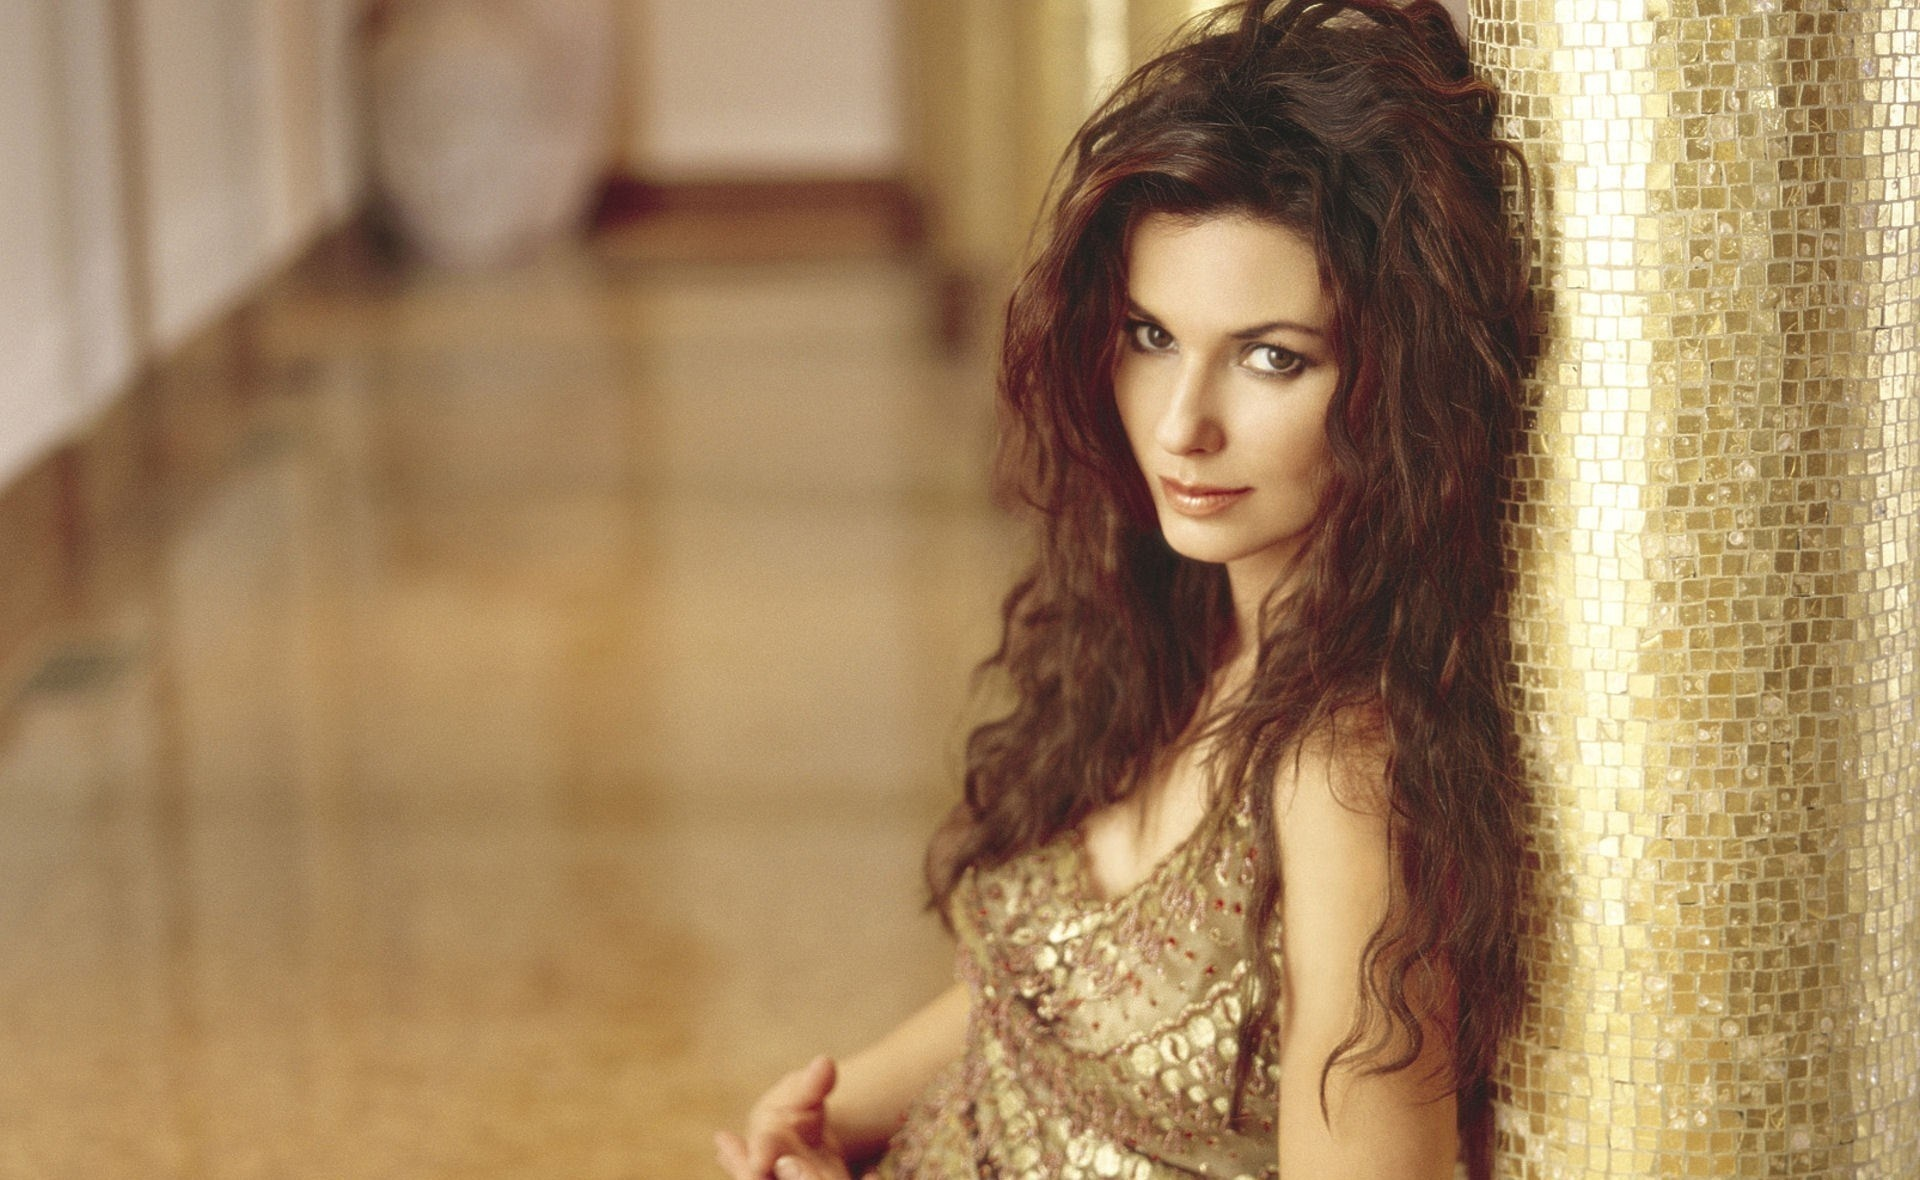 Shania Twain Computer Wallpapers Desktop Backgrounds 1920x1180